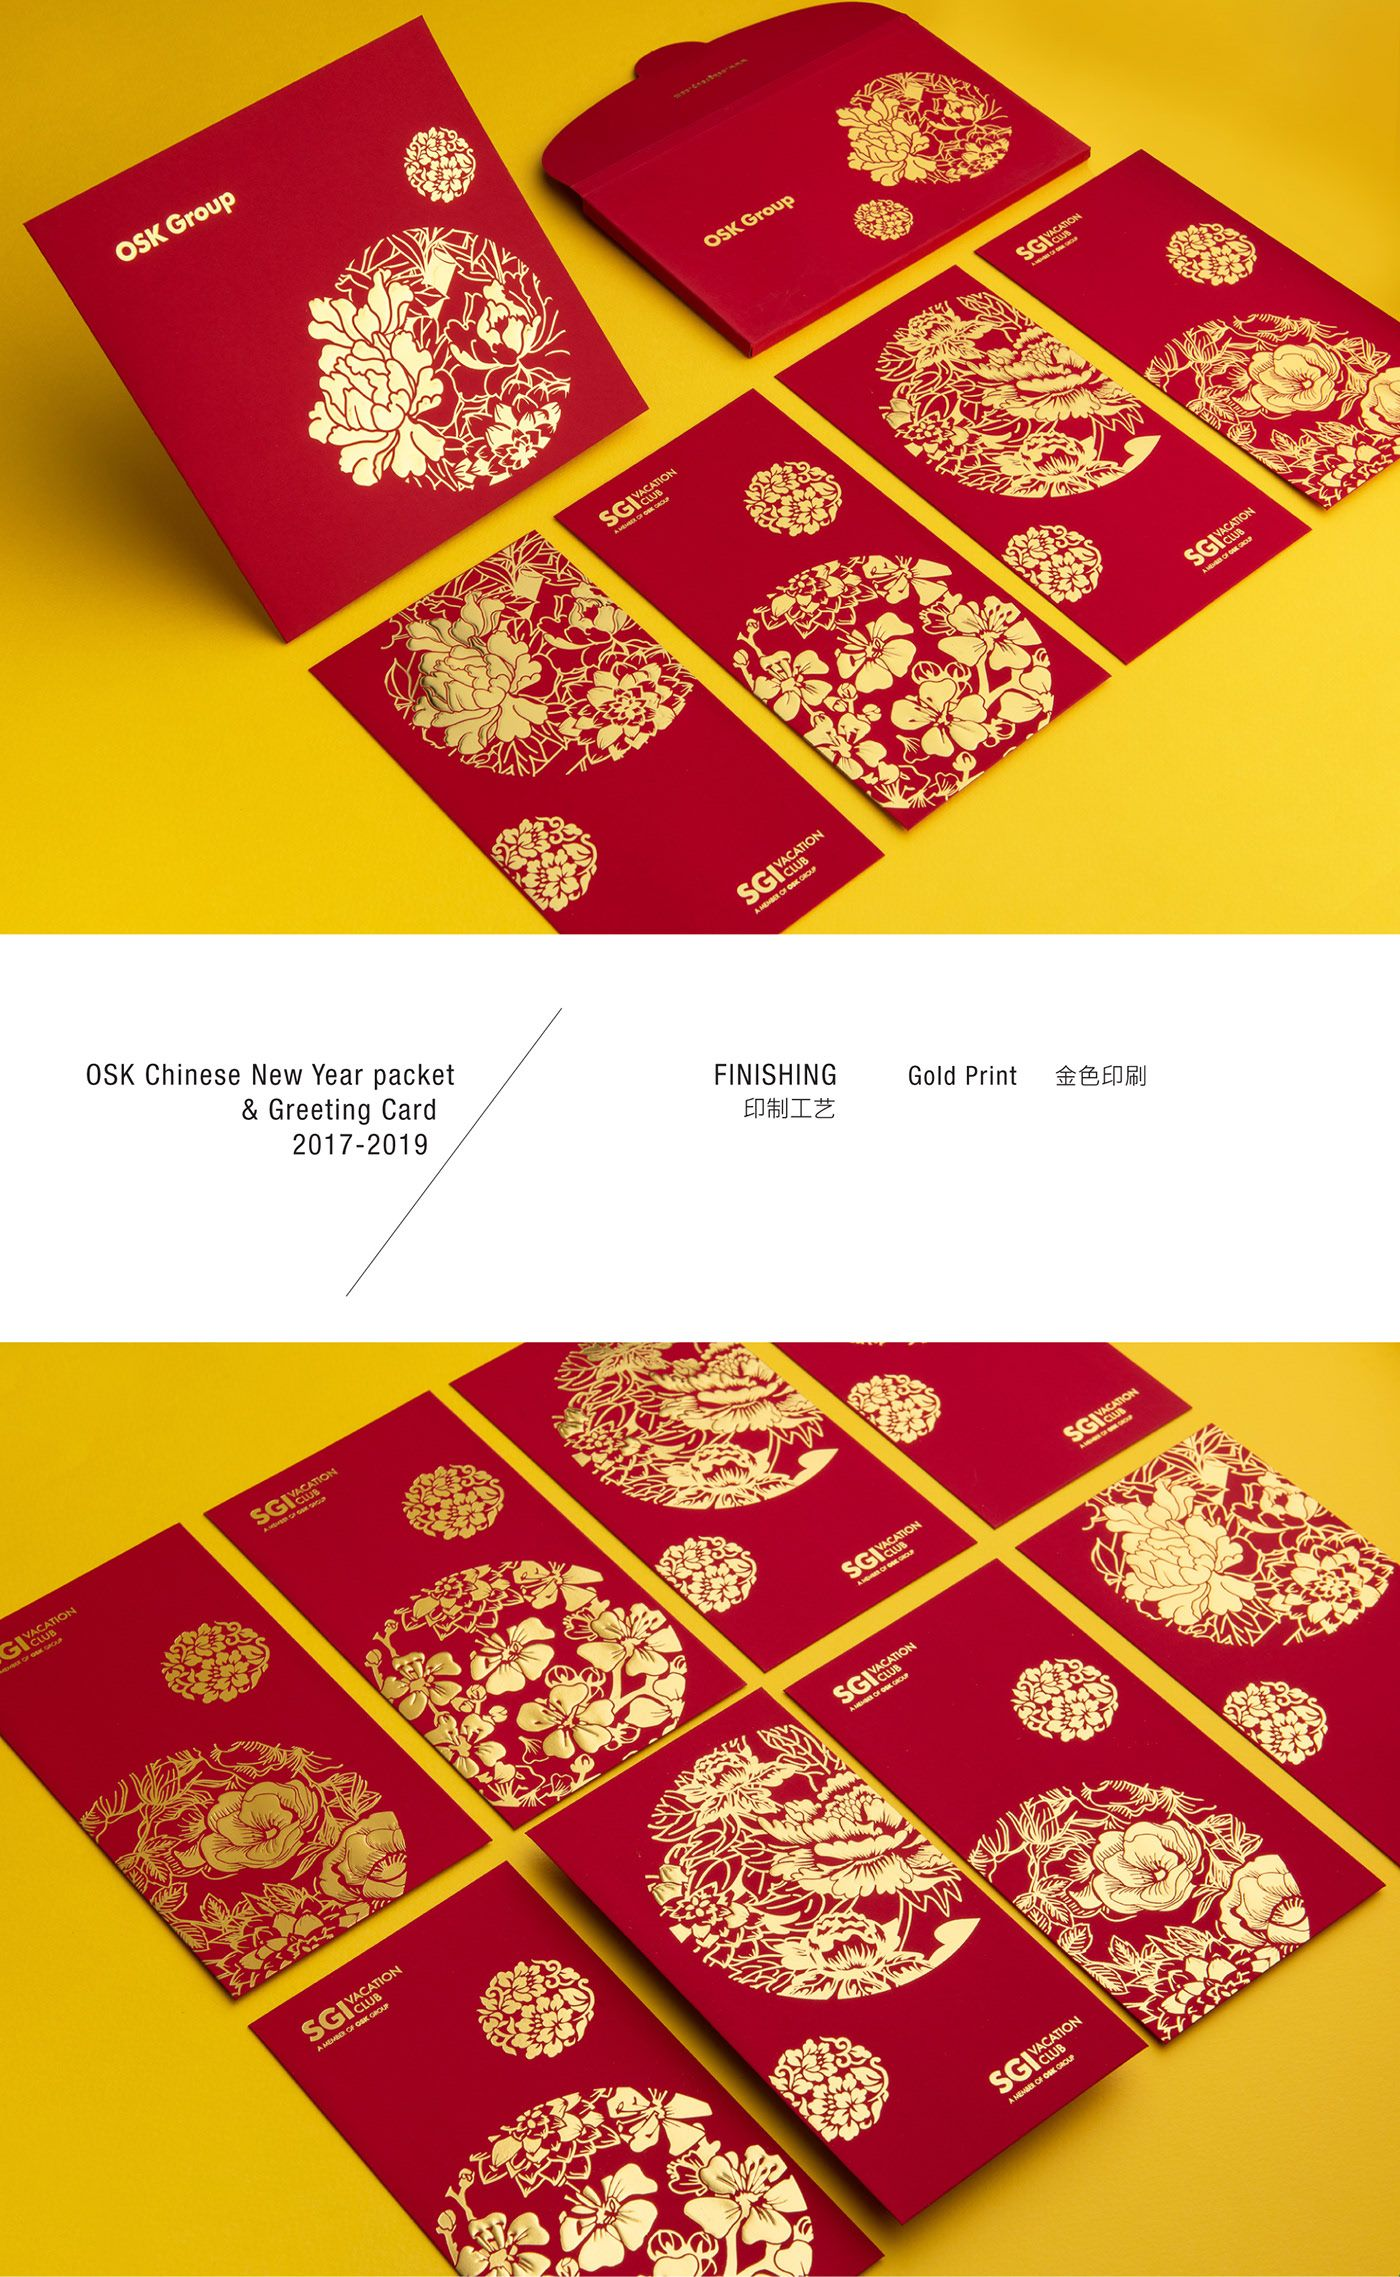 OSK Chinese New Year Packet & Greeting Card 2016&2018 on ...